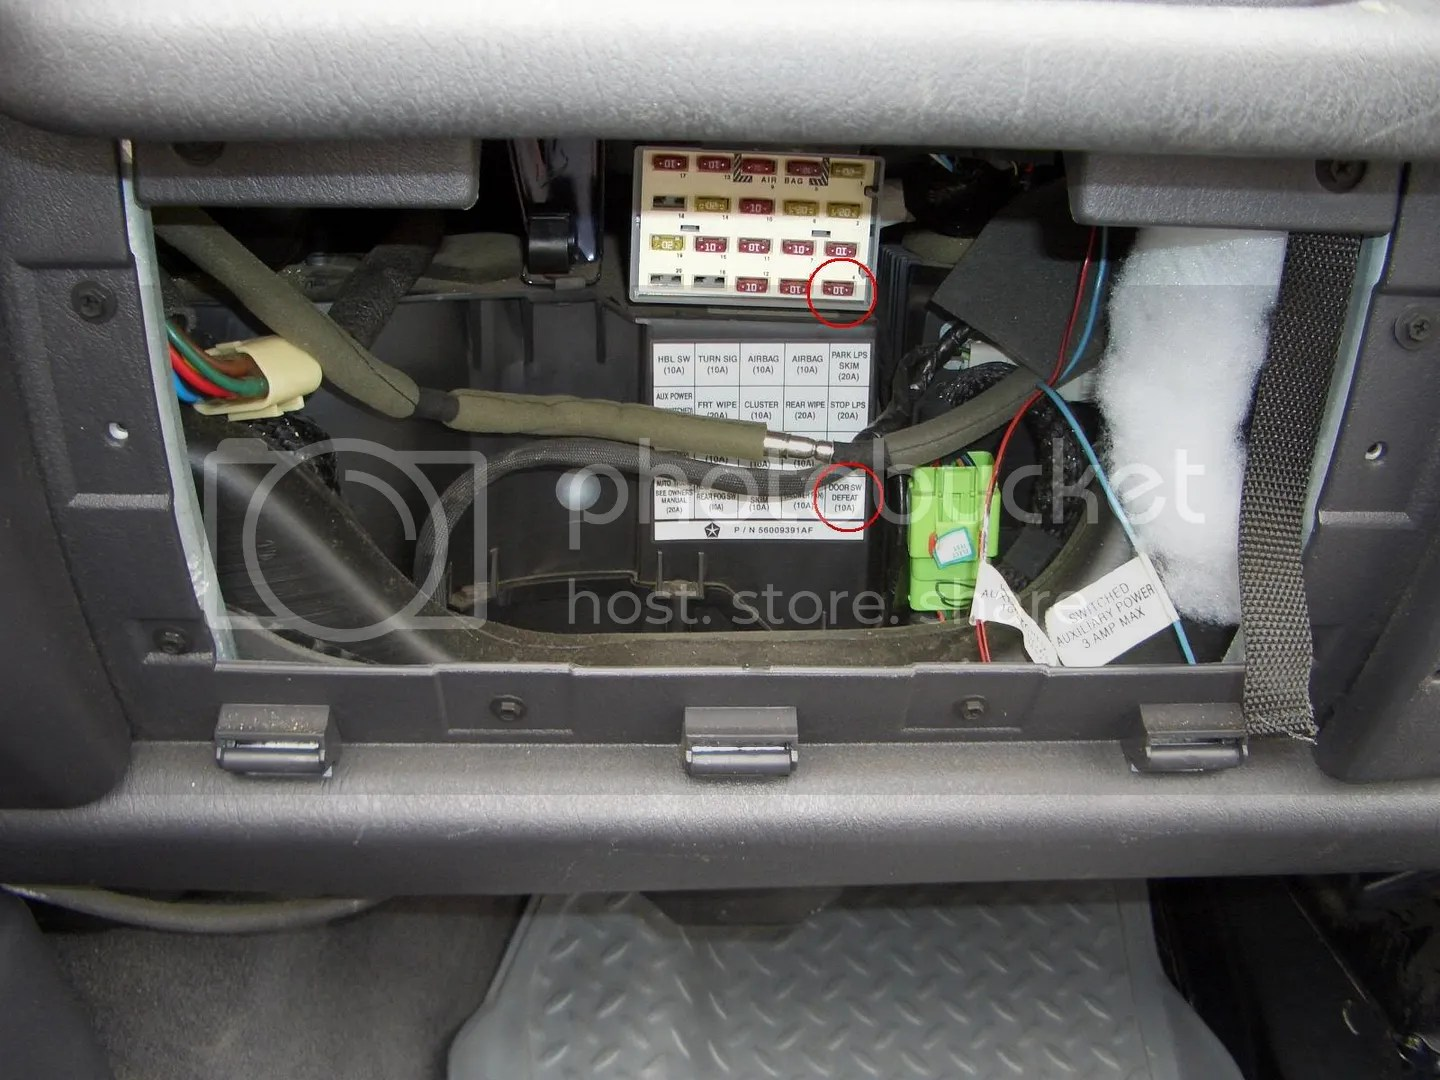 hight resolution of 98 tj dash fuse box wiring diagram mega98 wrangler fuse box manual e book 98 tj